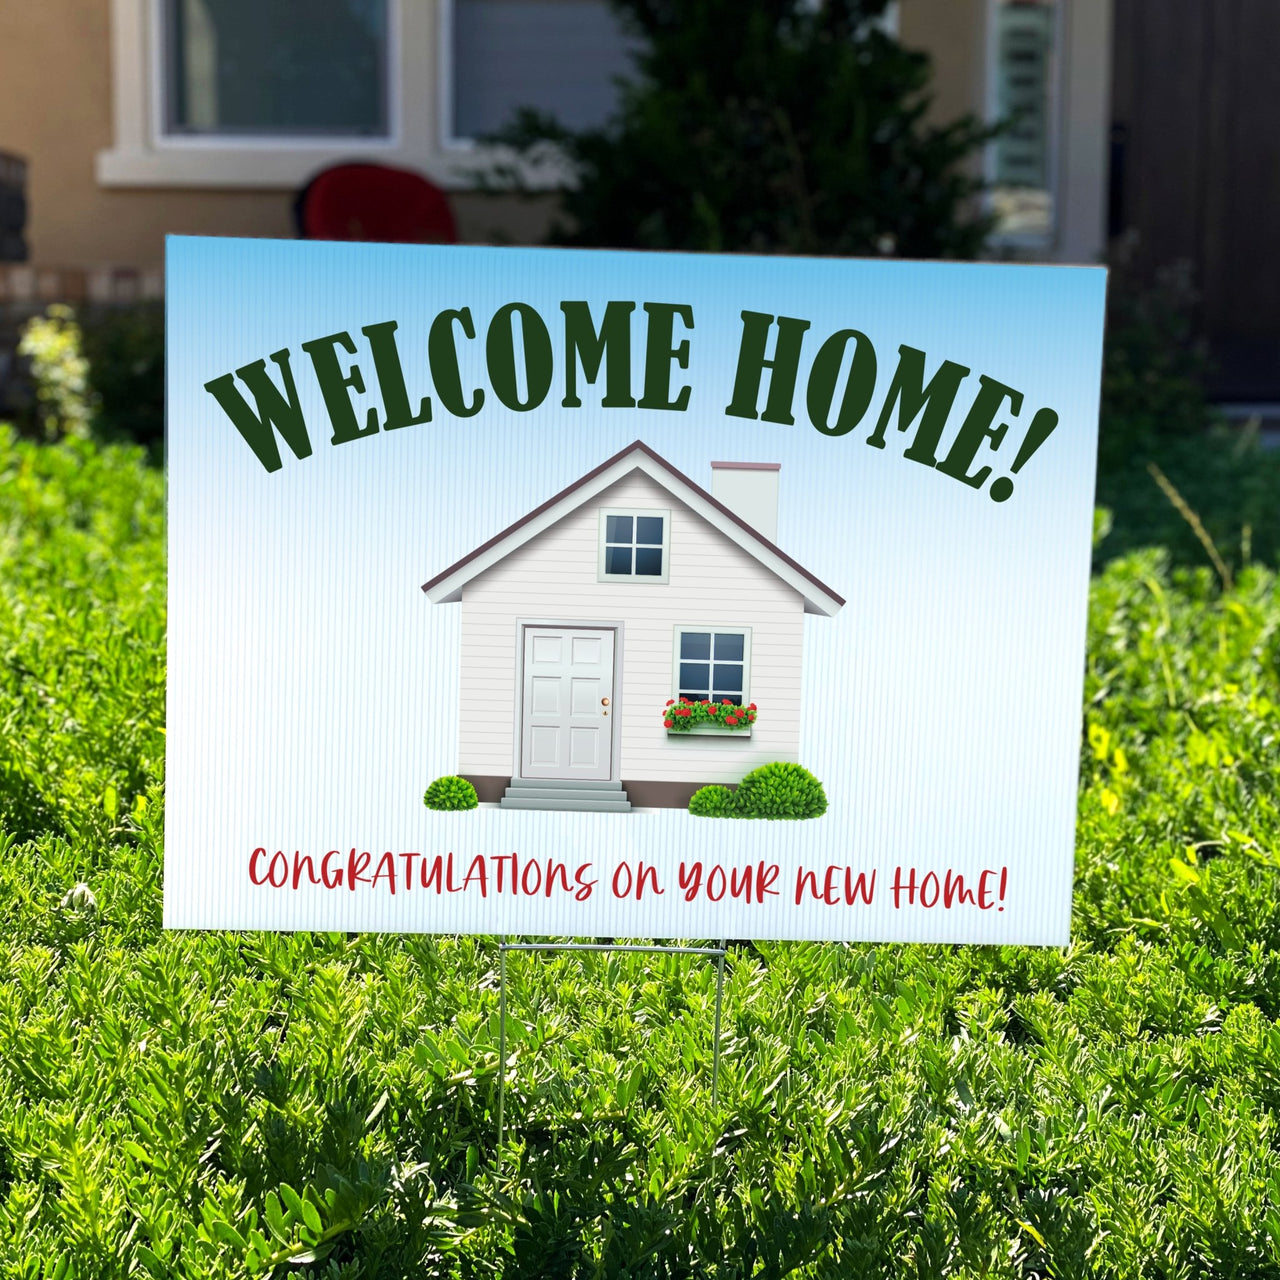 Welcome Home Congratulations On Your New Home Yard Sign - Rich Design Co